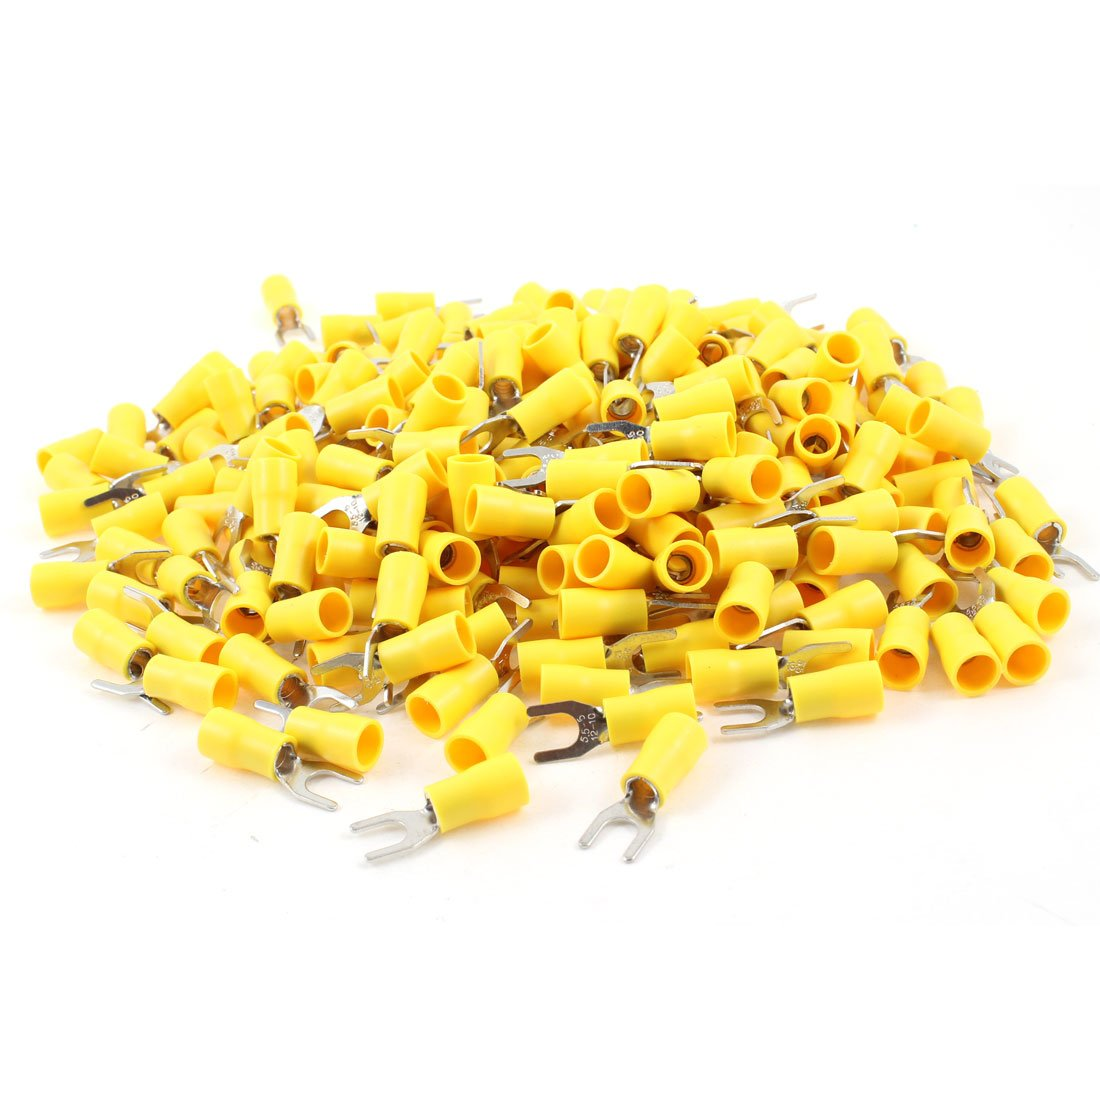 Uxcell SV5.5-5 Pre Insulated Fork Terminal for AWG 12-10 Wire and #10 Stud, 500 Piece, Yellow